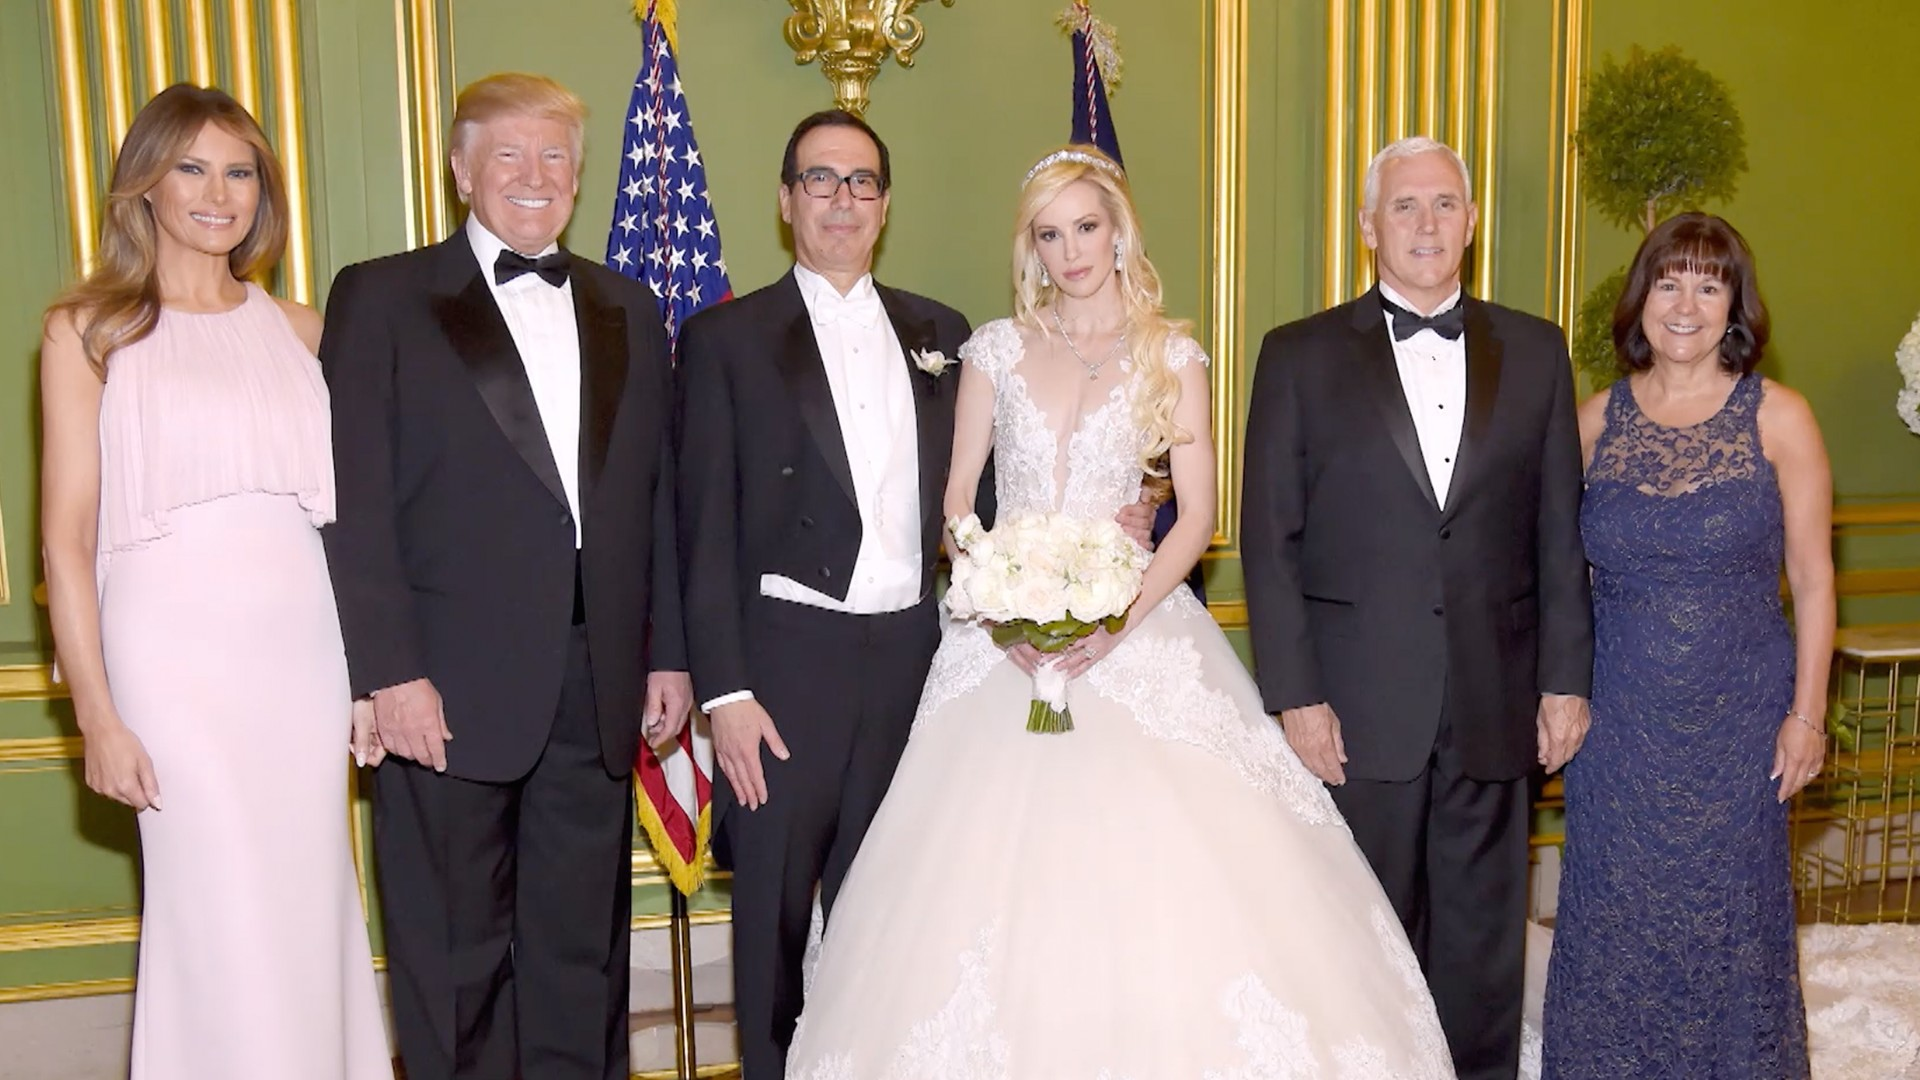 Louise Linton Photos >> Louise Linton, Wife of Treasury Secretary - VICE Video: Documentaries, Films, News Videos